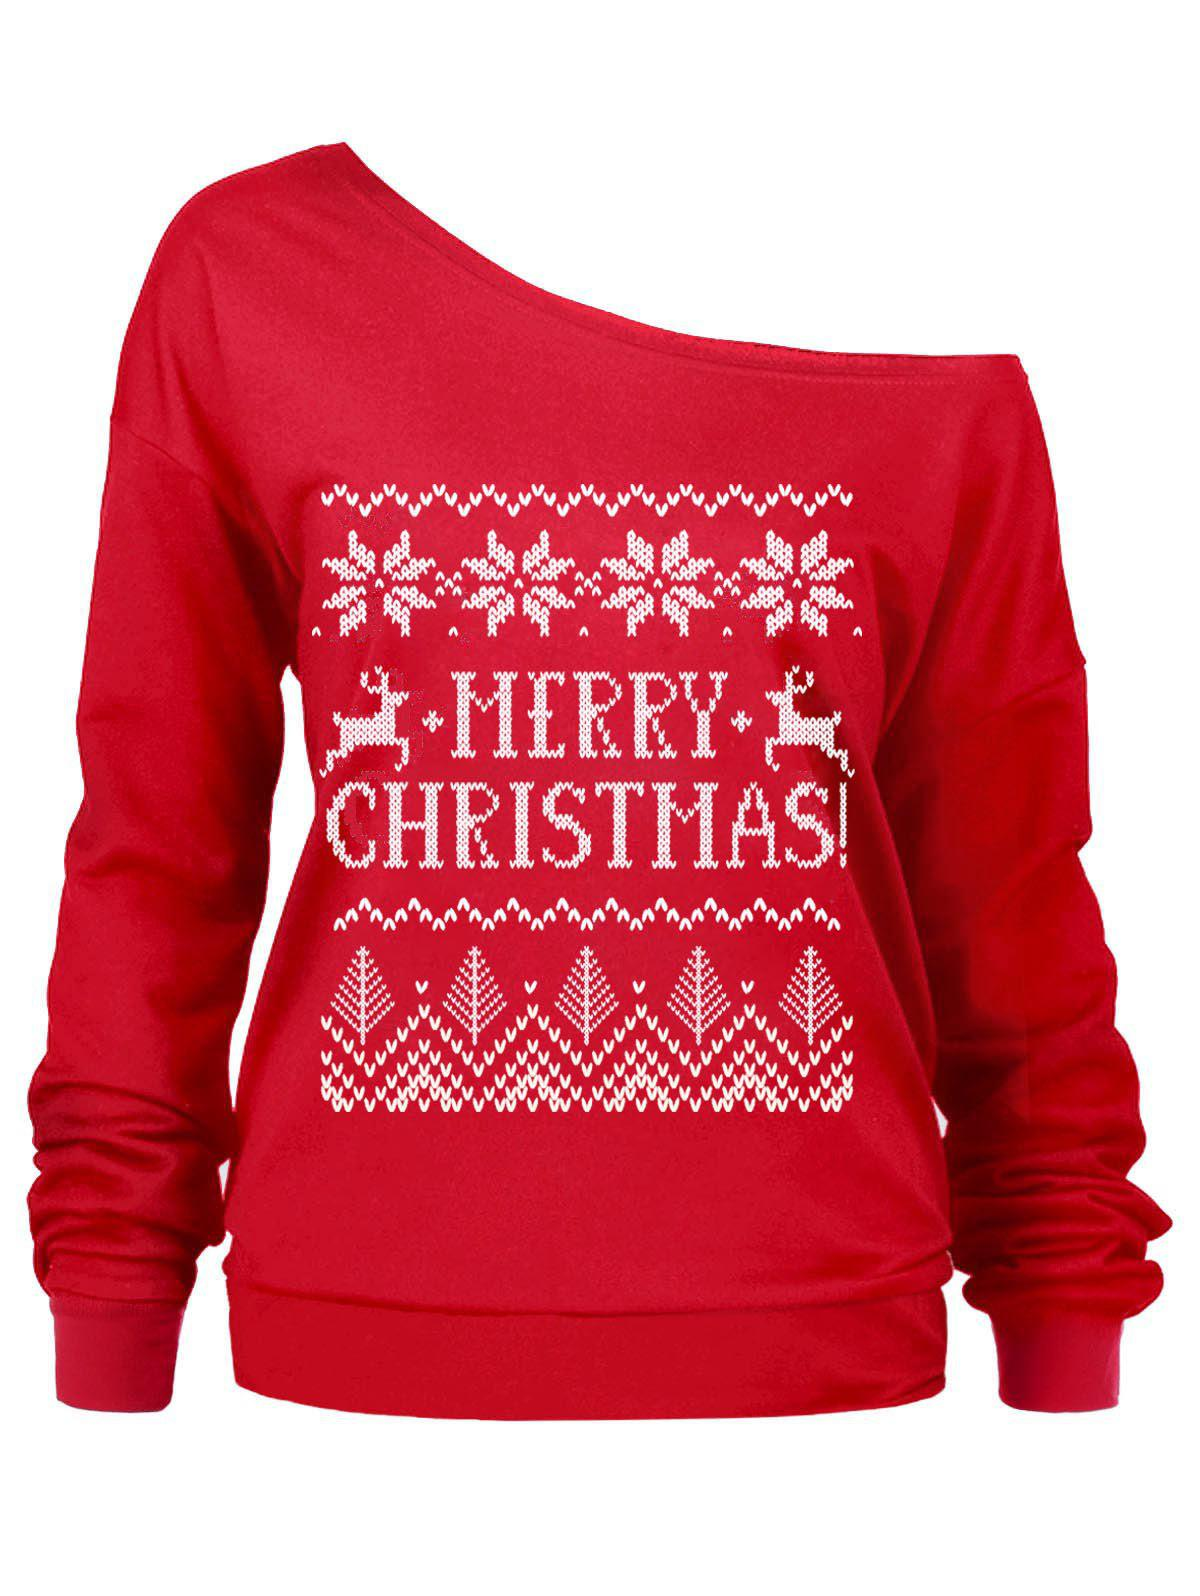 Christmas Letters Print Skew Neck SweatshirtWOMEN<br><br>Size: L; Color: RED; Material: Polyester; Shirt Length: Regular; Sleeve Length: Full; Style: Casual; Pattern Style: Letter,Print; Season: Fall,Spring,Winter; Weight: 0.3600kg; Package Contents: 1 x Sweatshirt;